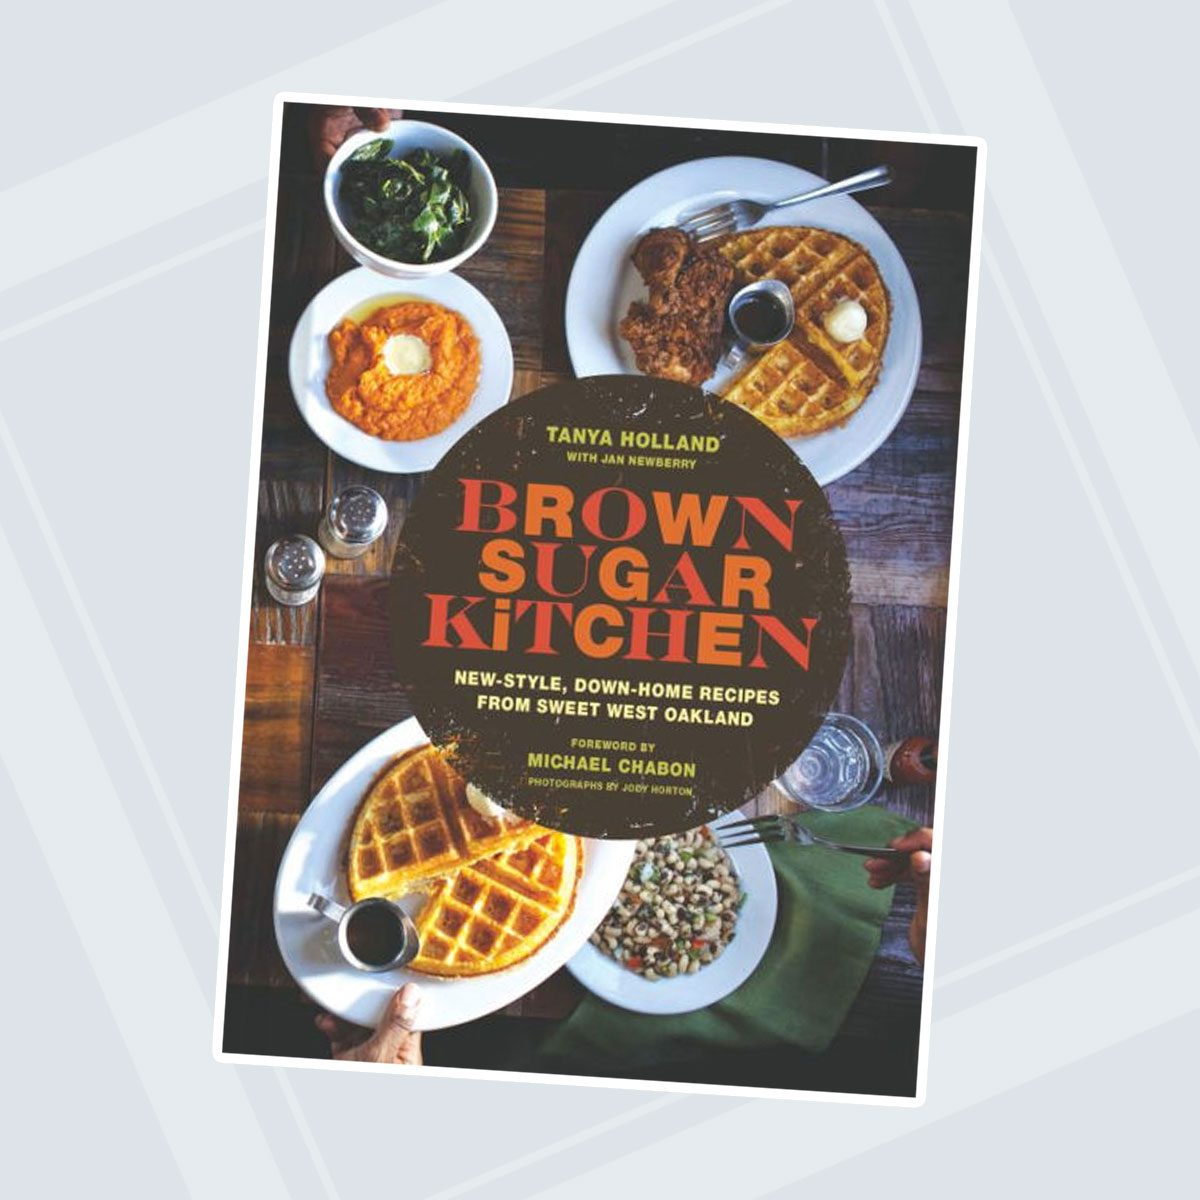 Brown Sugar Kitchen: New-Style, Down-Home Recipes from Sweet West Oakland (Soul Food Cookbook, Southern Style Cookbook, Recipe Book)